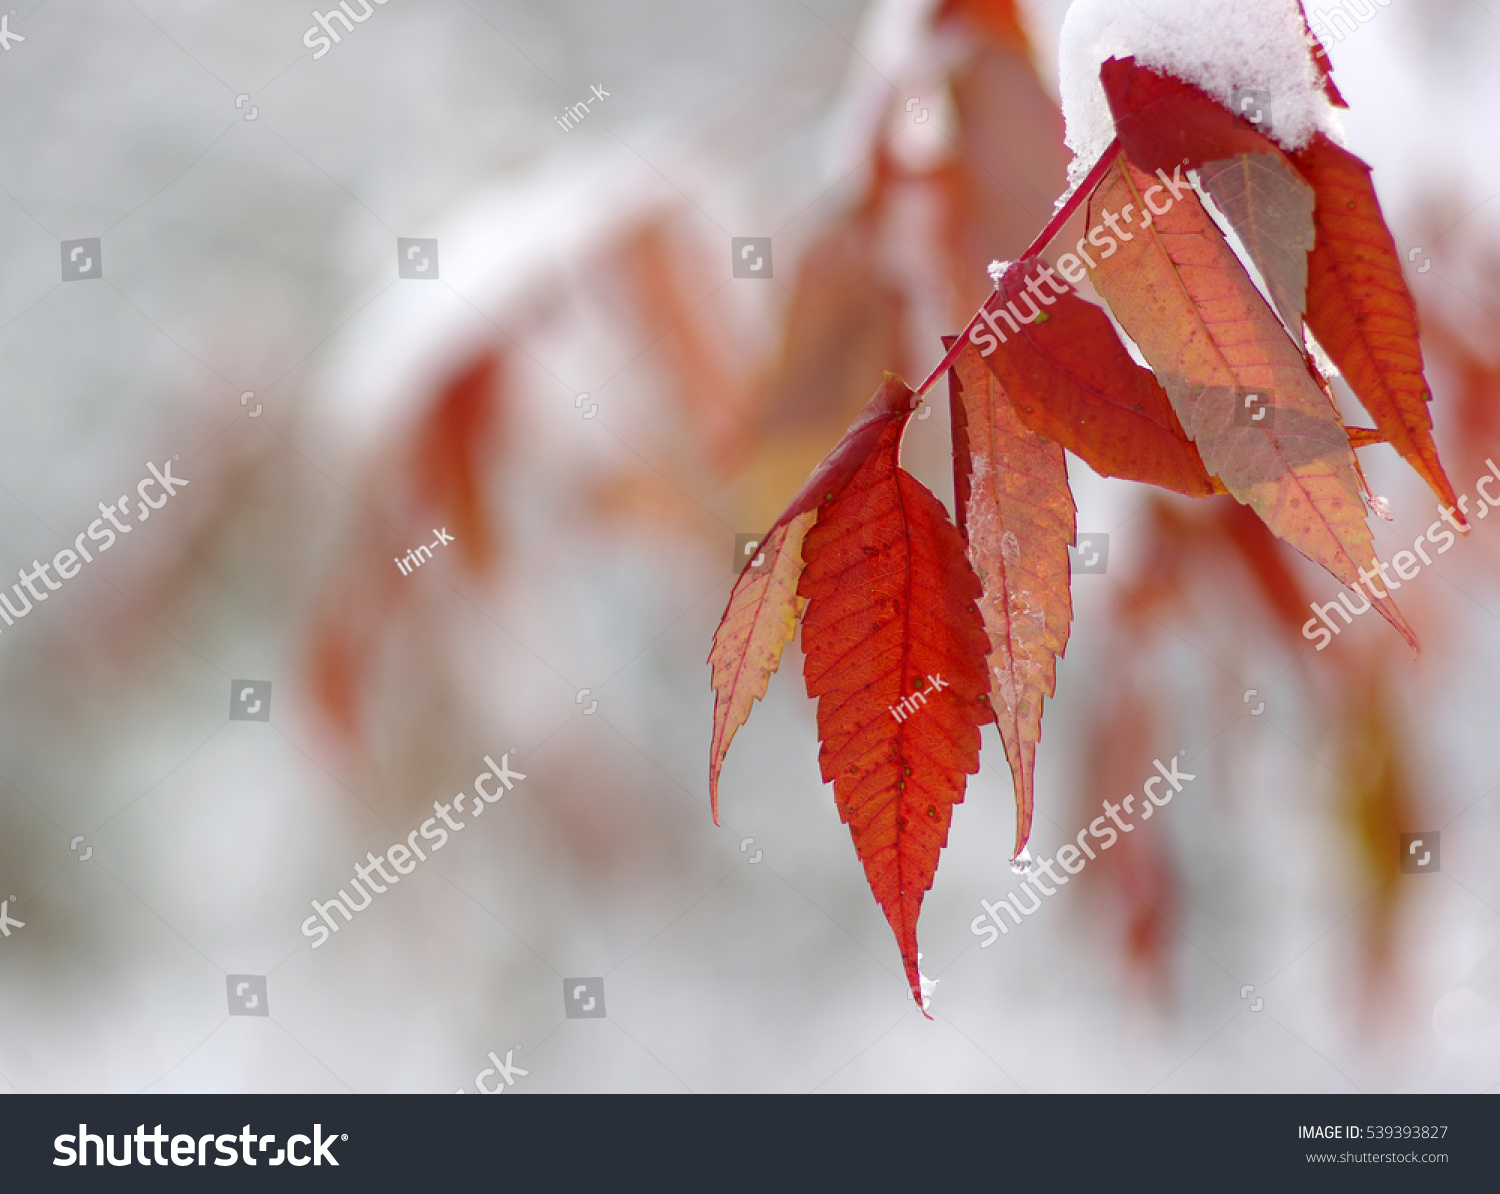 Yellow leaves in snow. Late fall and early winter. Blurred nature background with shallow dof. #539393827